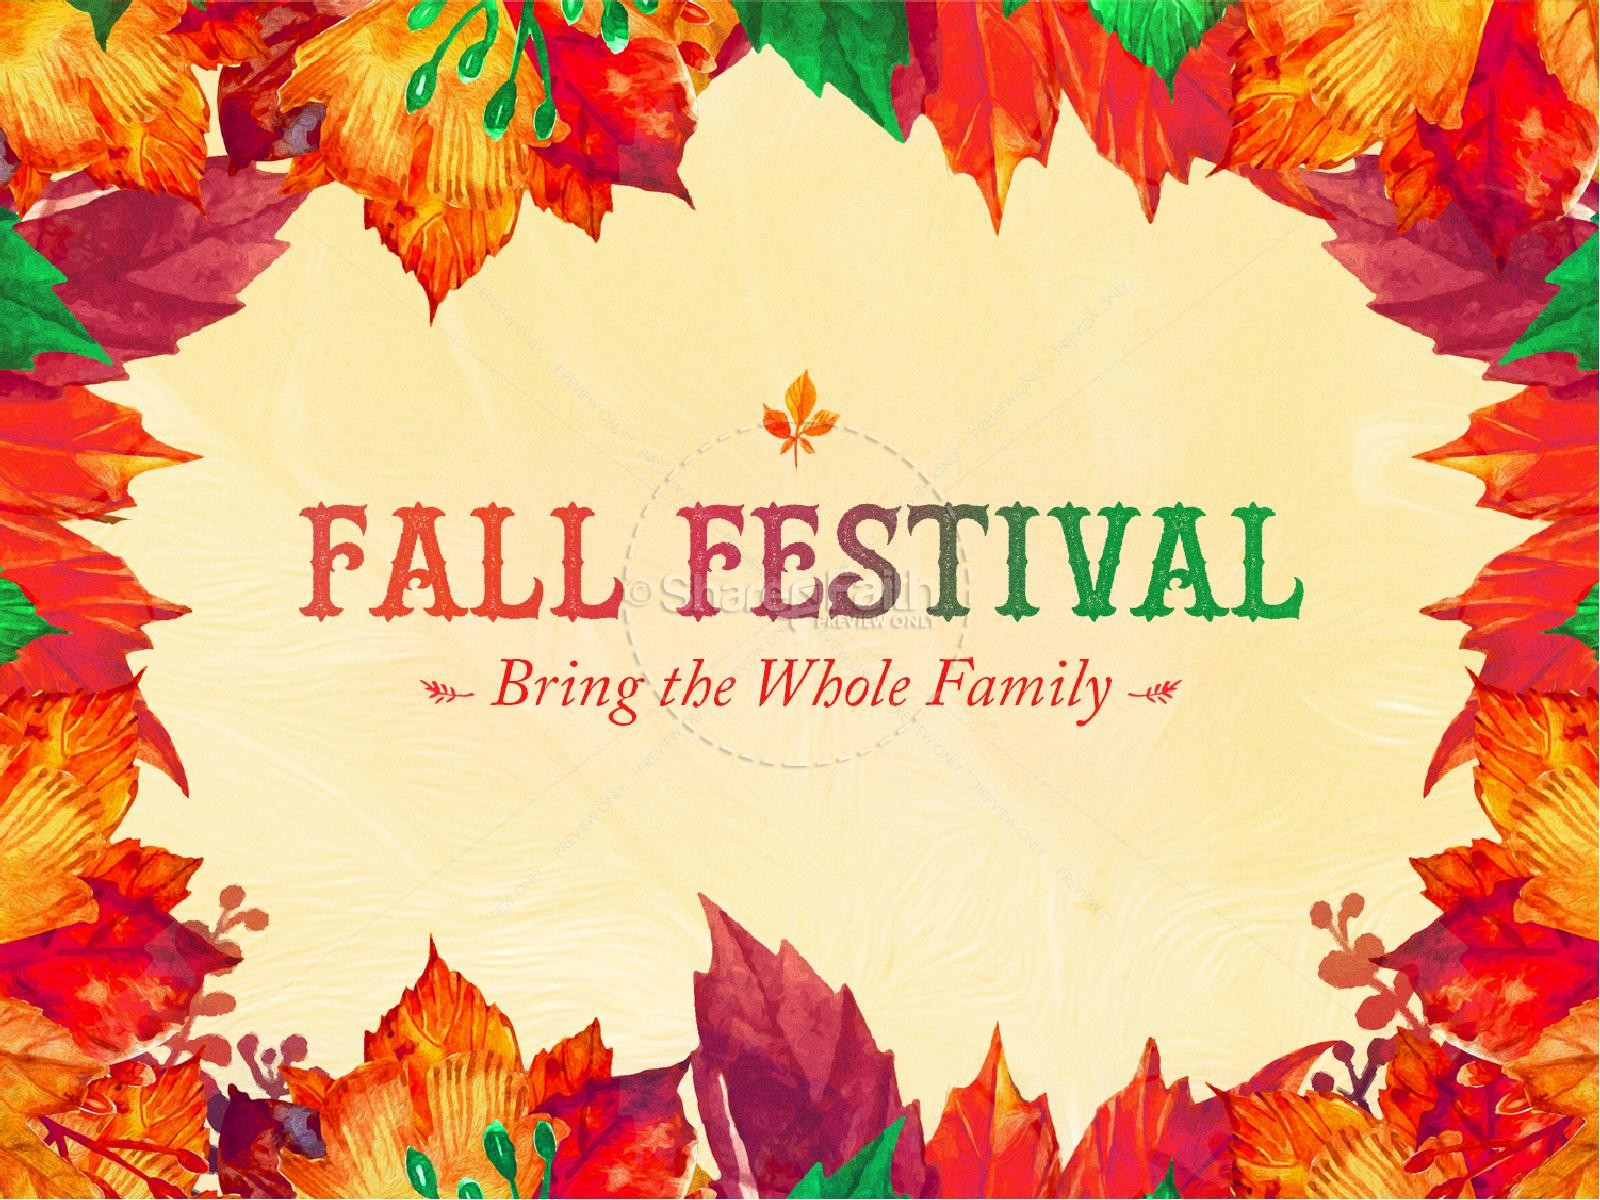 Fall Festival Autumn Leaves Church PowerPoint